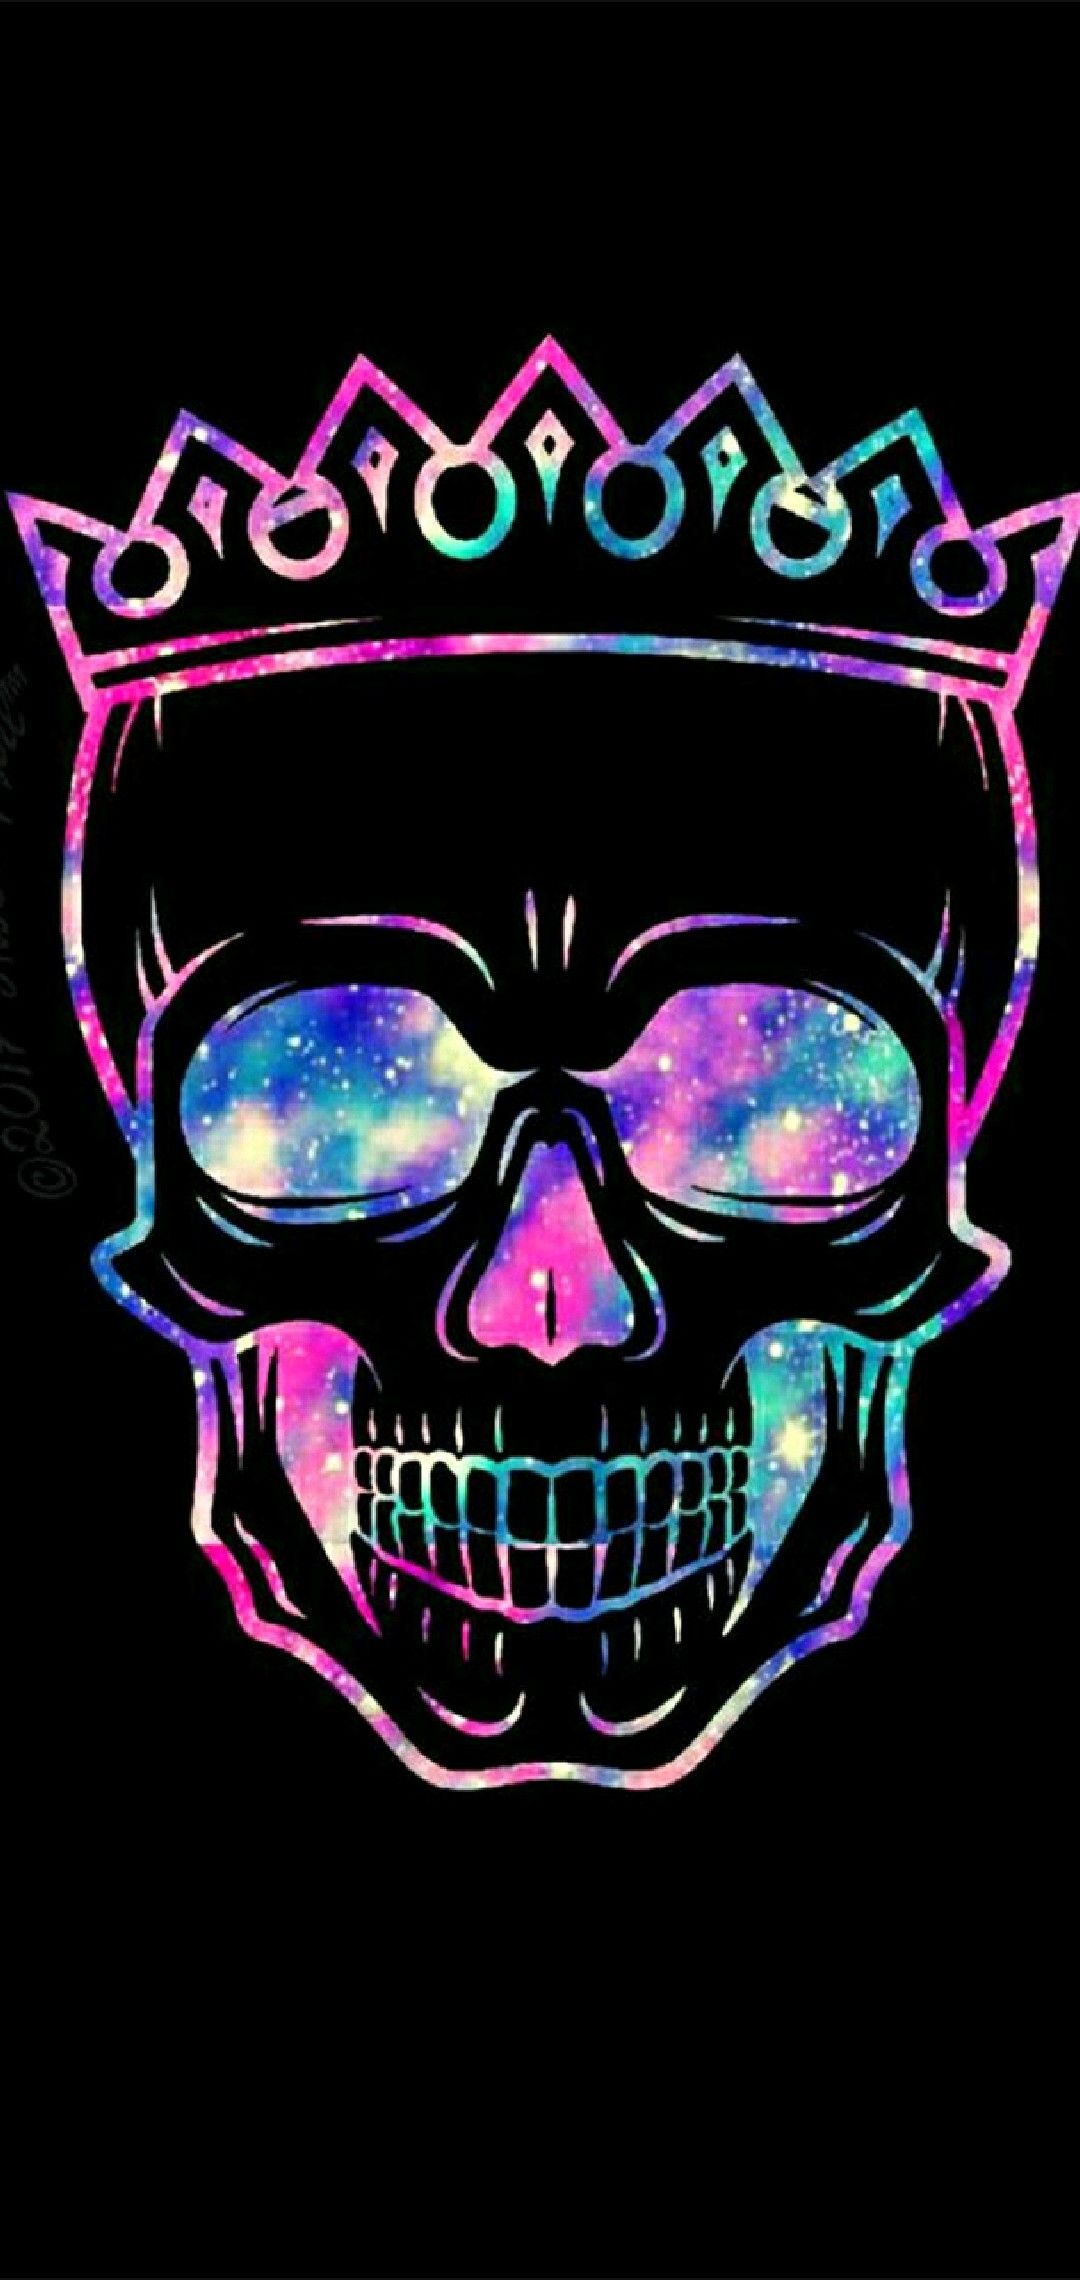 Pin by NikklaDesigns on Skull / Skeleton Wallpaper (With